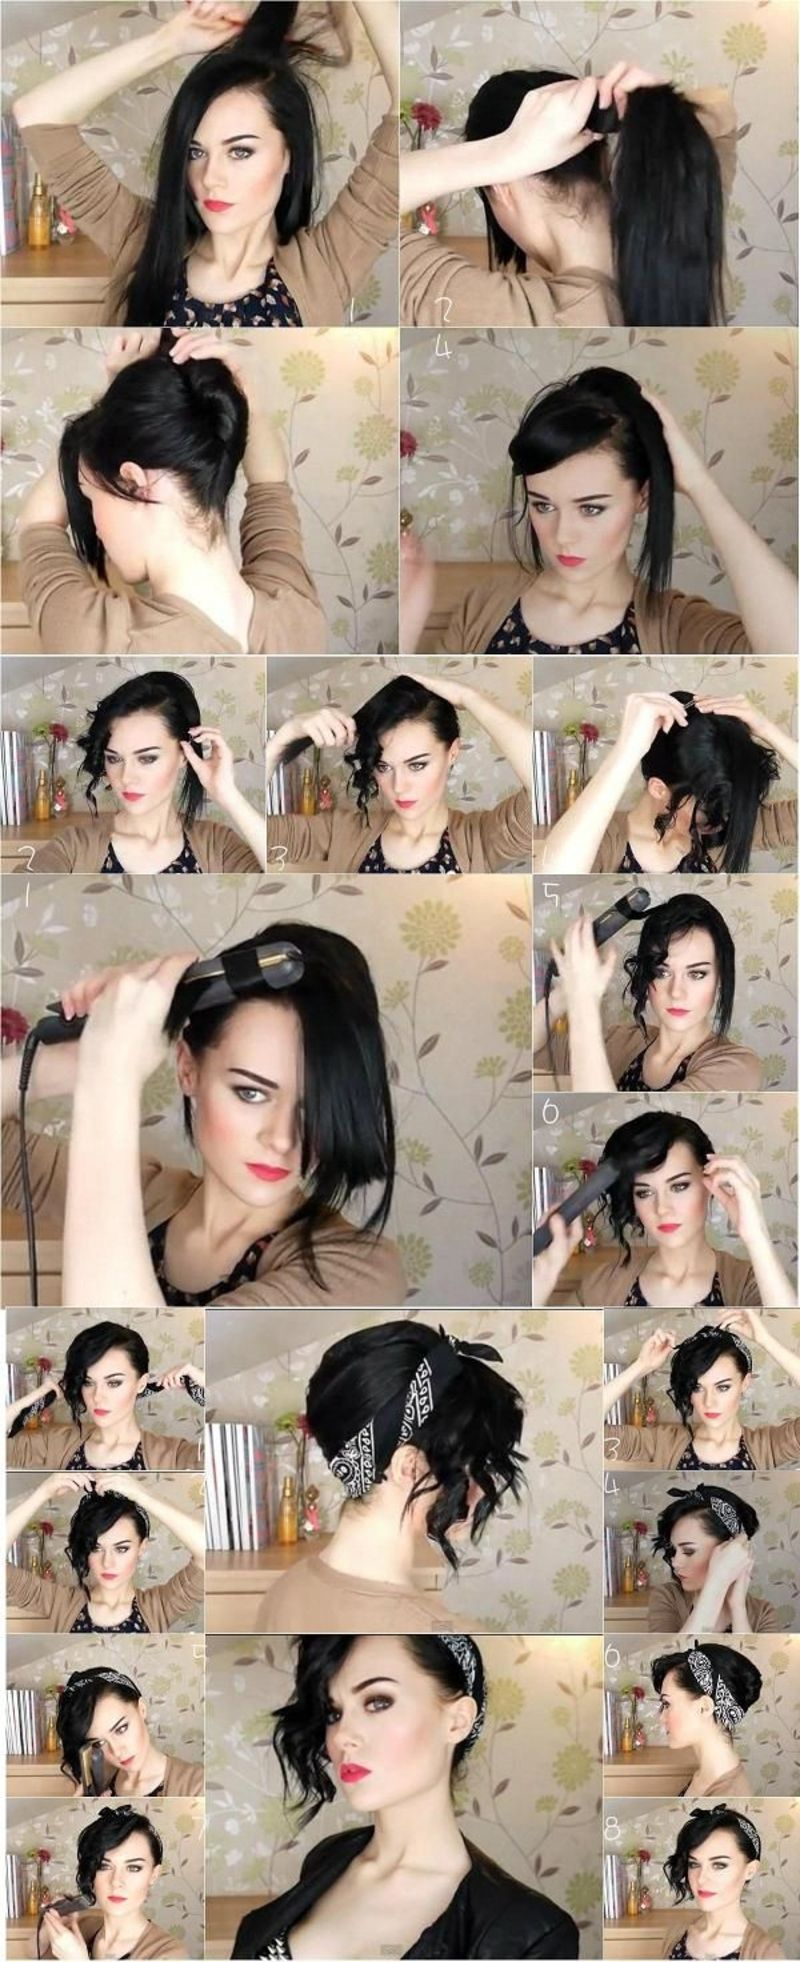 Cute Updo For Summer Looks Pretty Easy To Achieve Too Rockabilly Hair Scarf Hairstyles Hair Styles